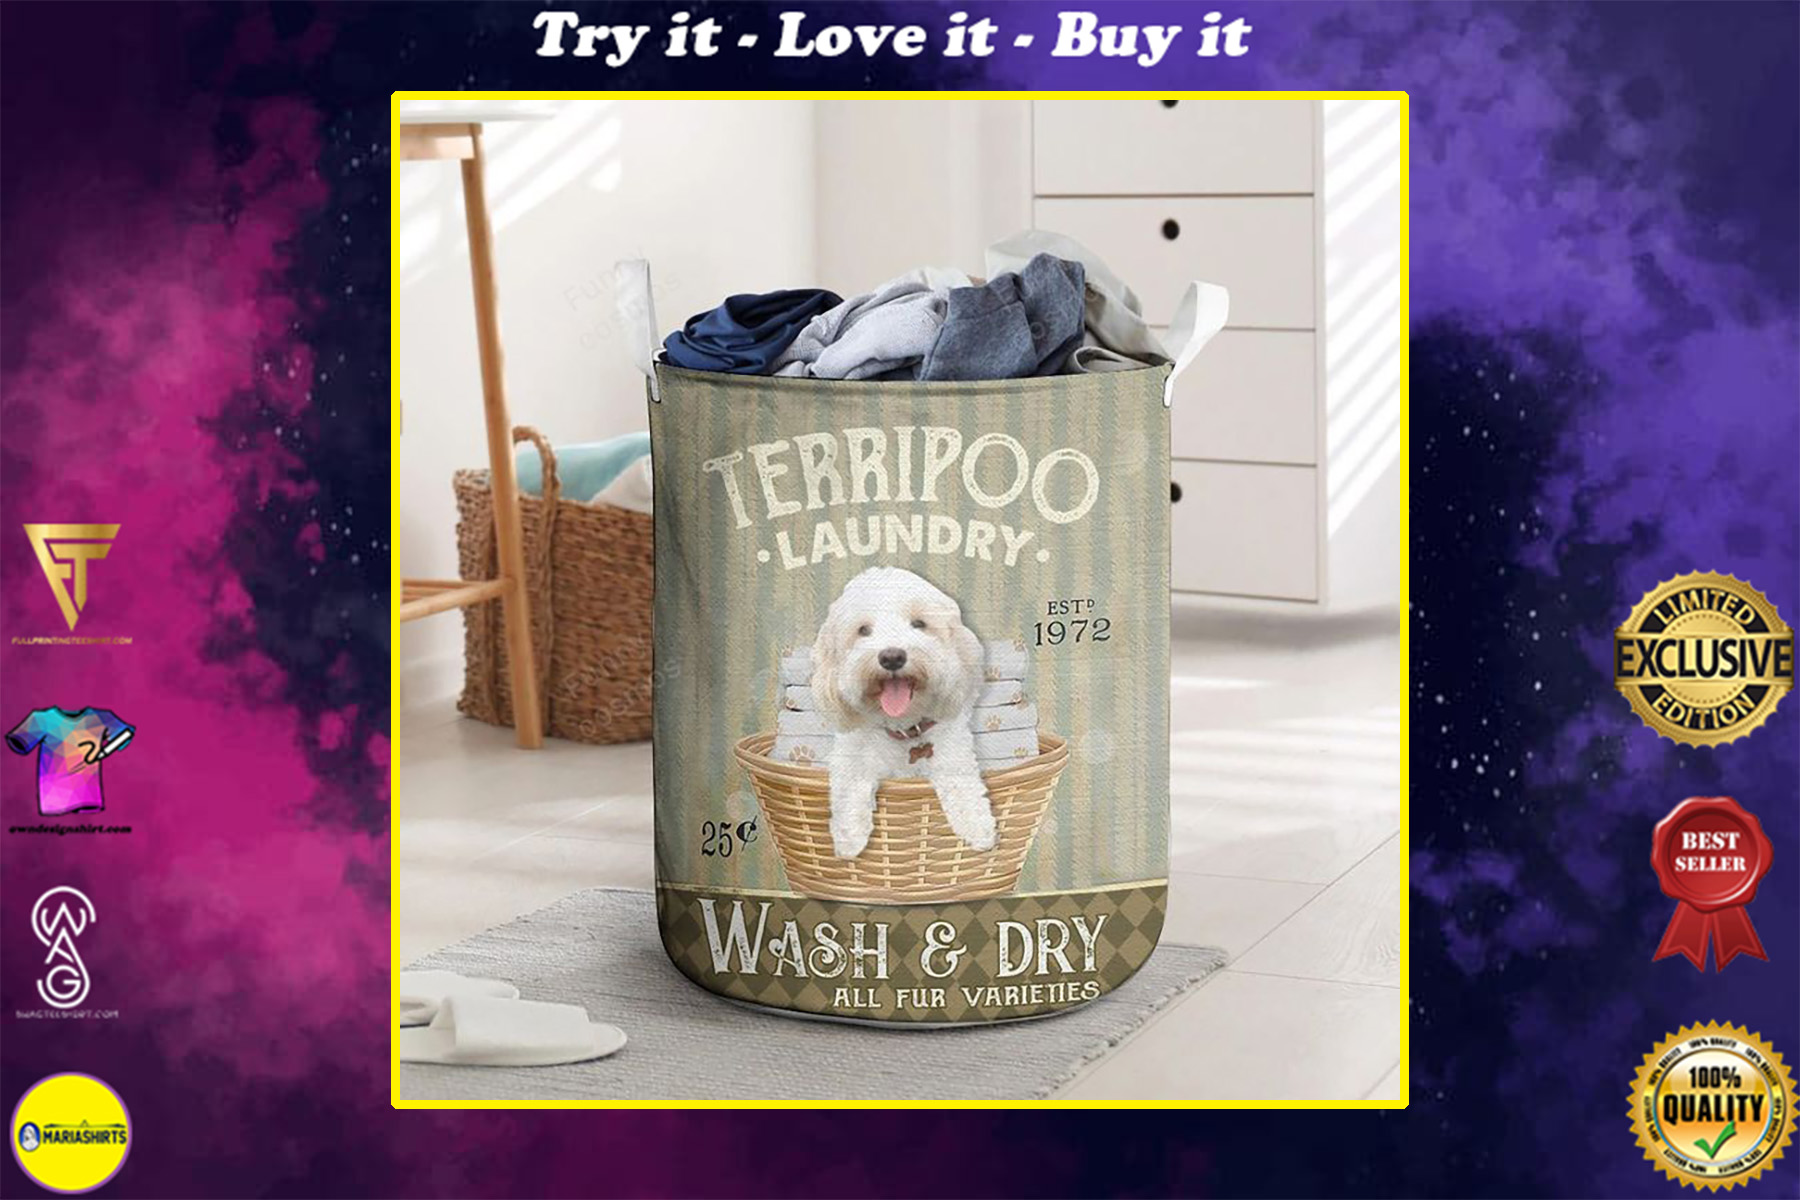 terri poo wash and dry all over printed laundry basket